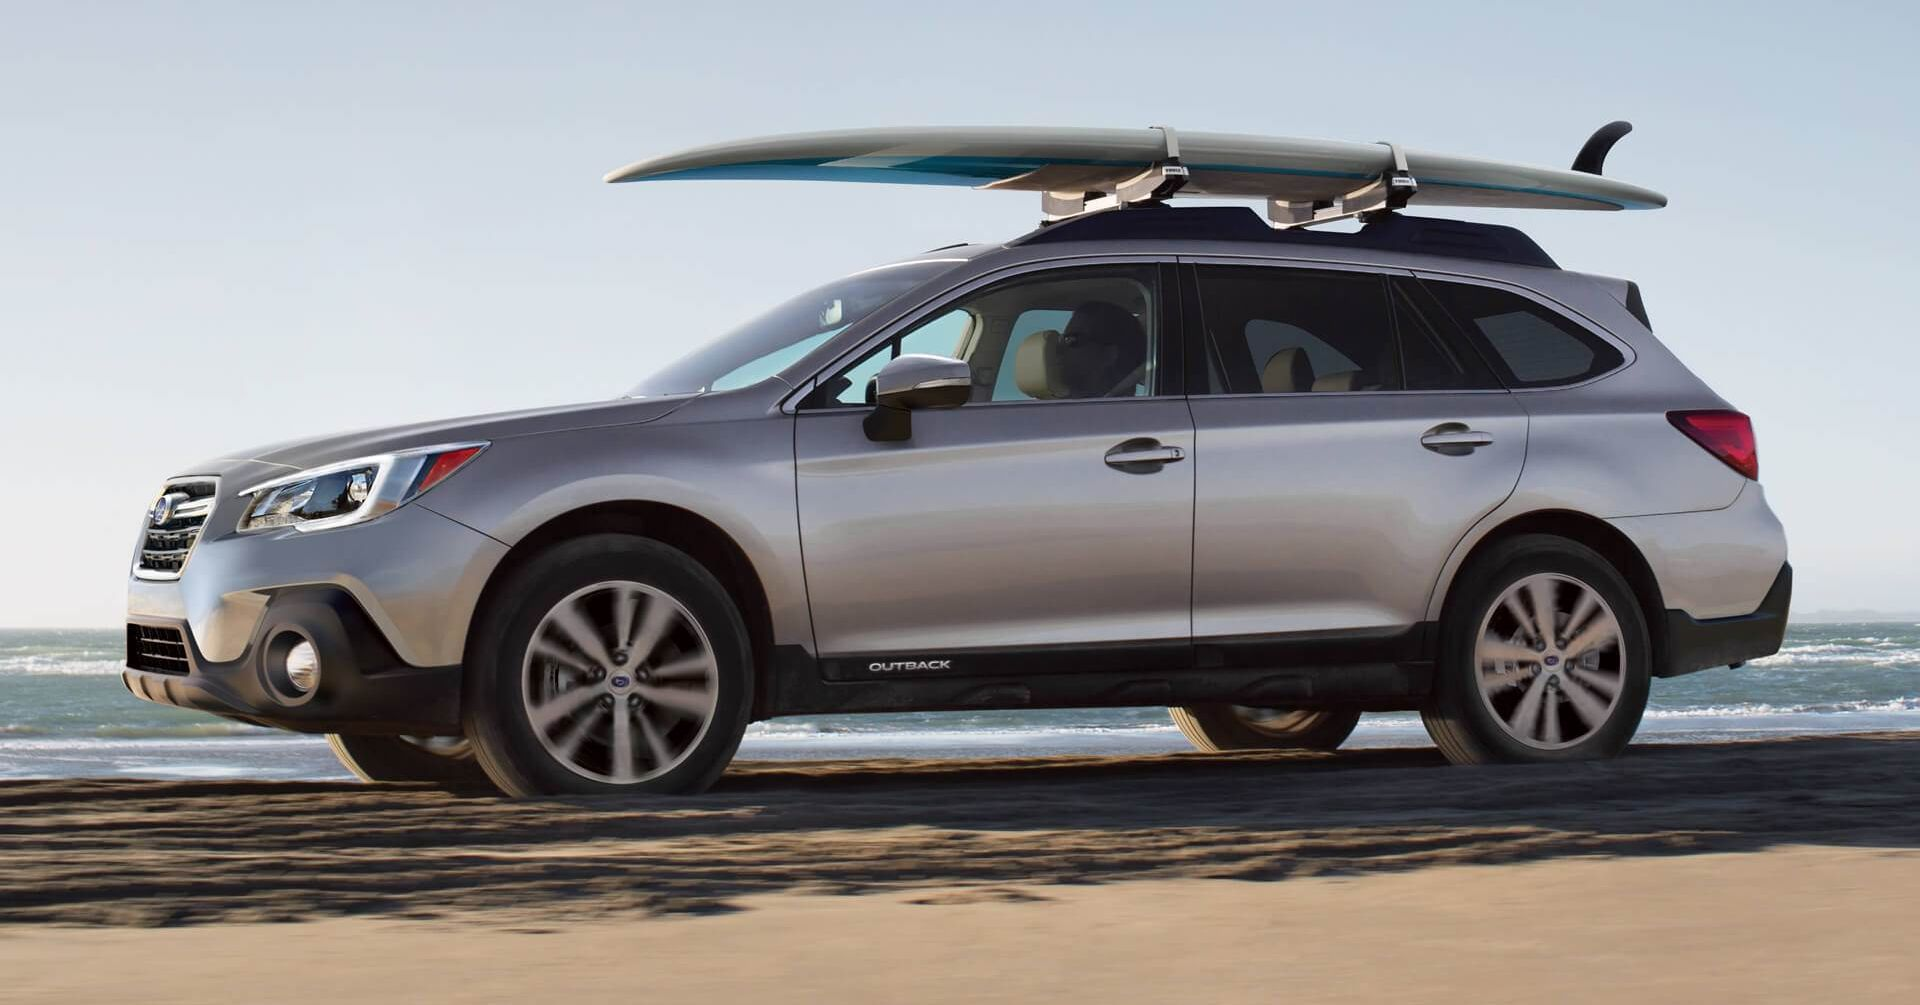 2018 Subaru Outback for Sale in Sacramento, CA